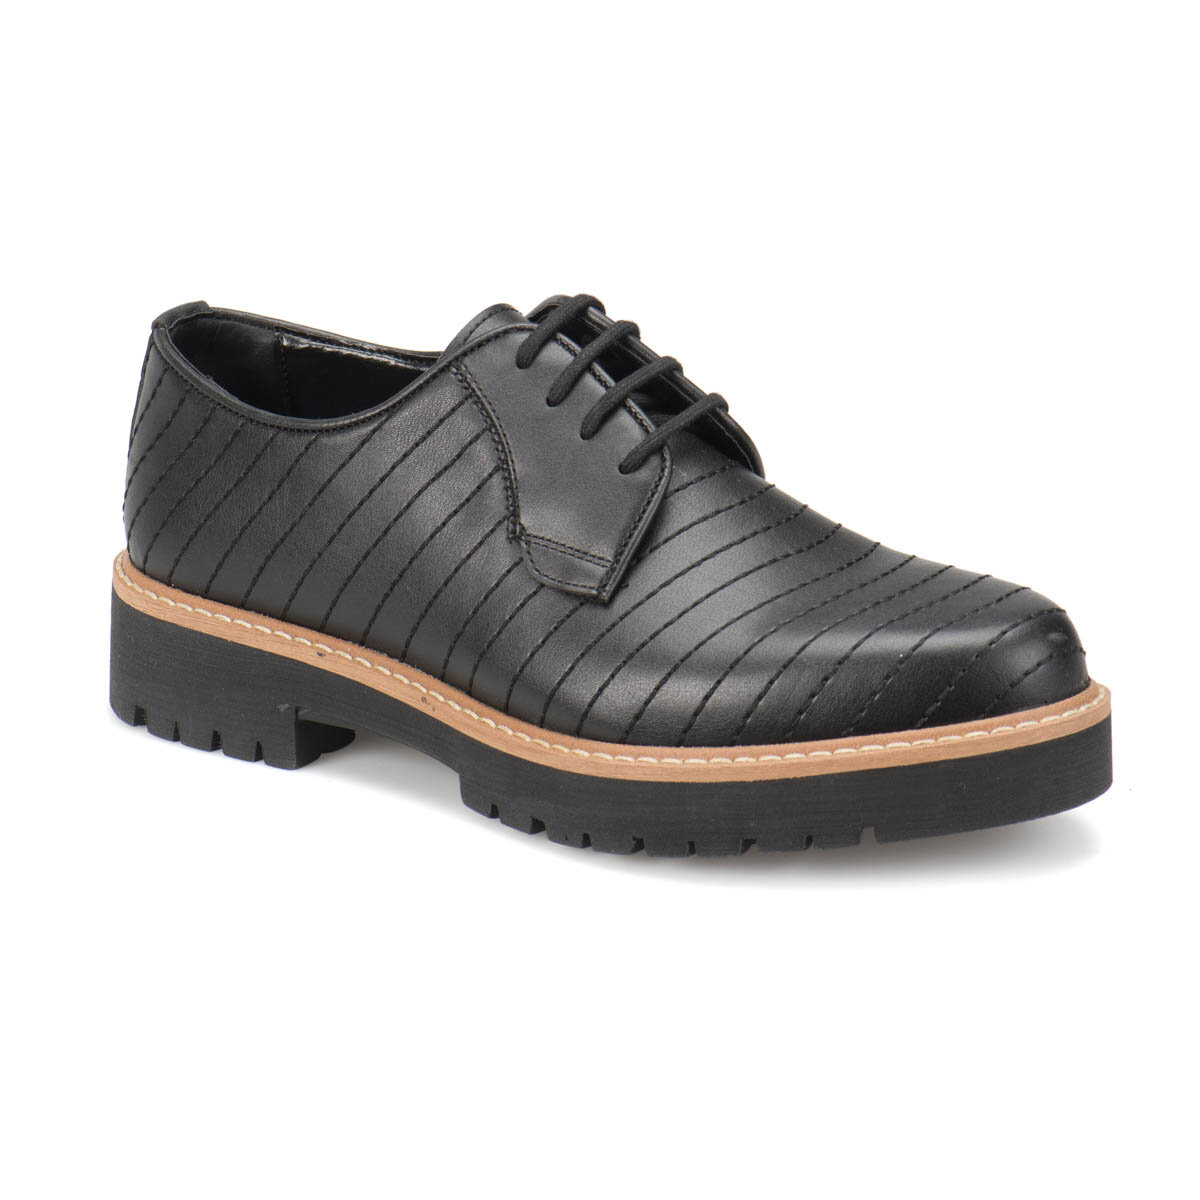 FLO 502-N Black Men 'S Modern Shoes-Styles